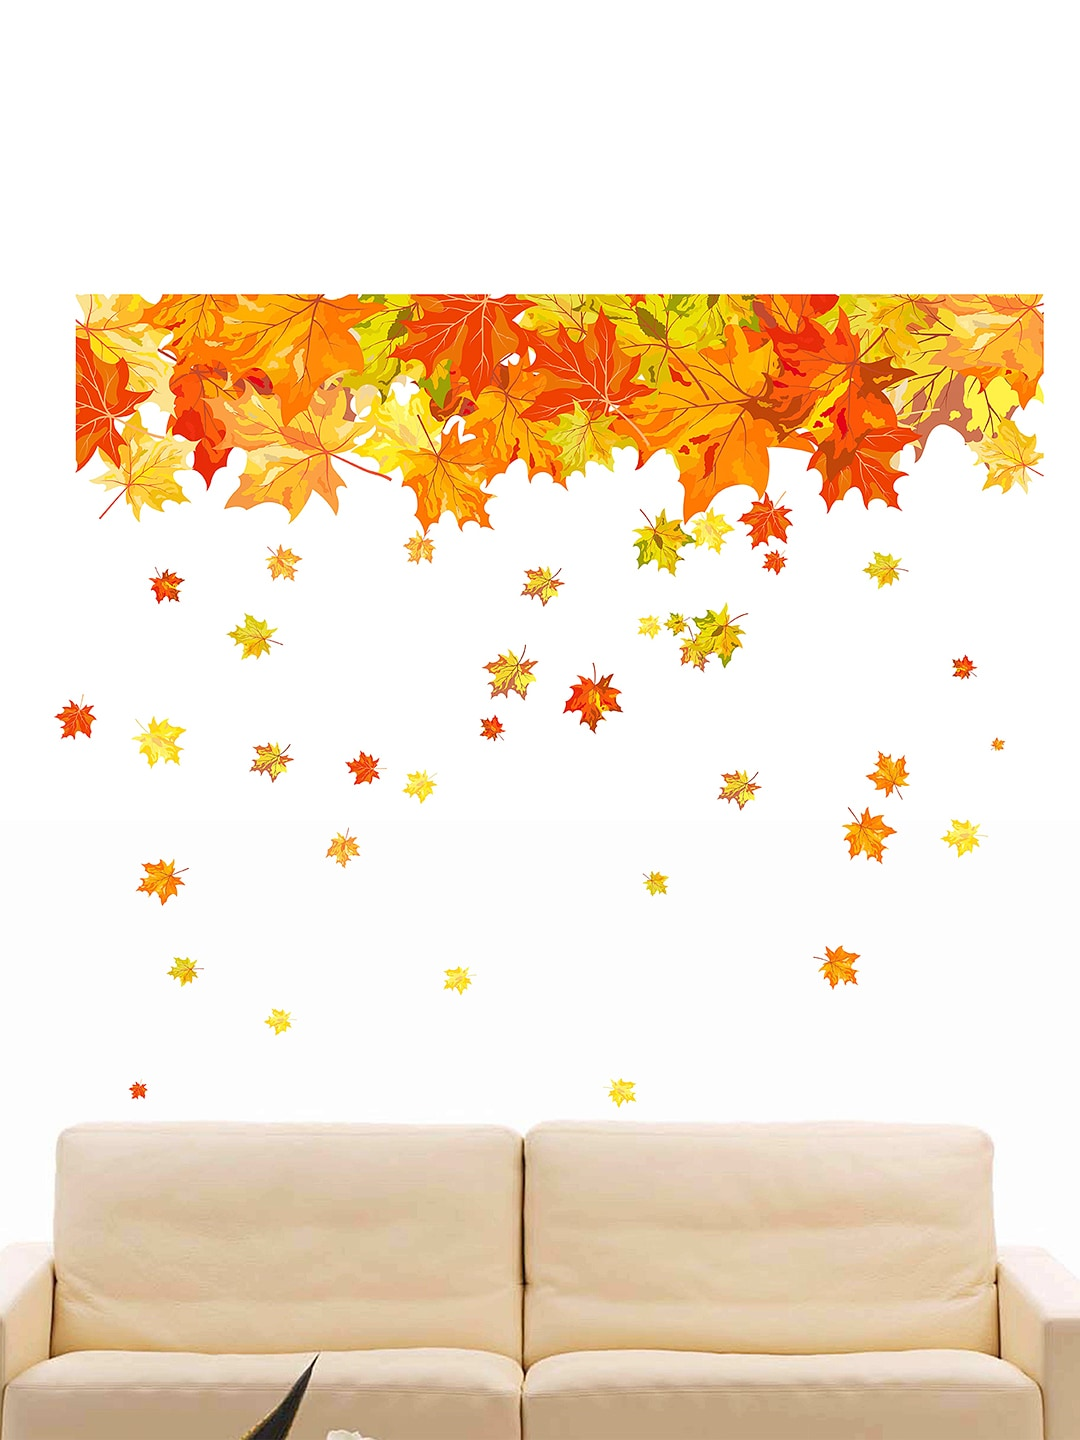 Wall Stickers - Buy Wall Sticker Online in India  5edc74dde